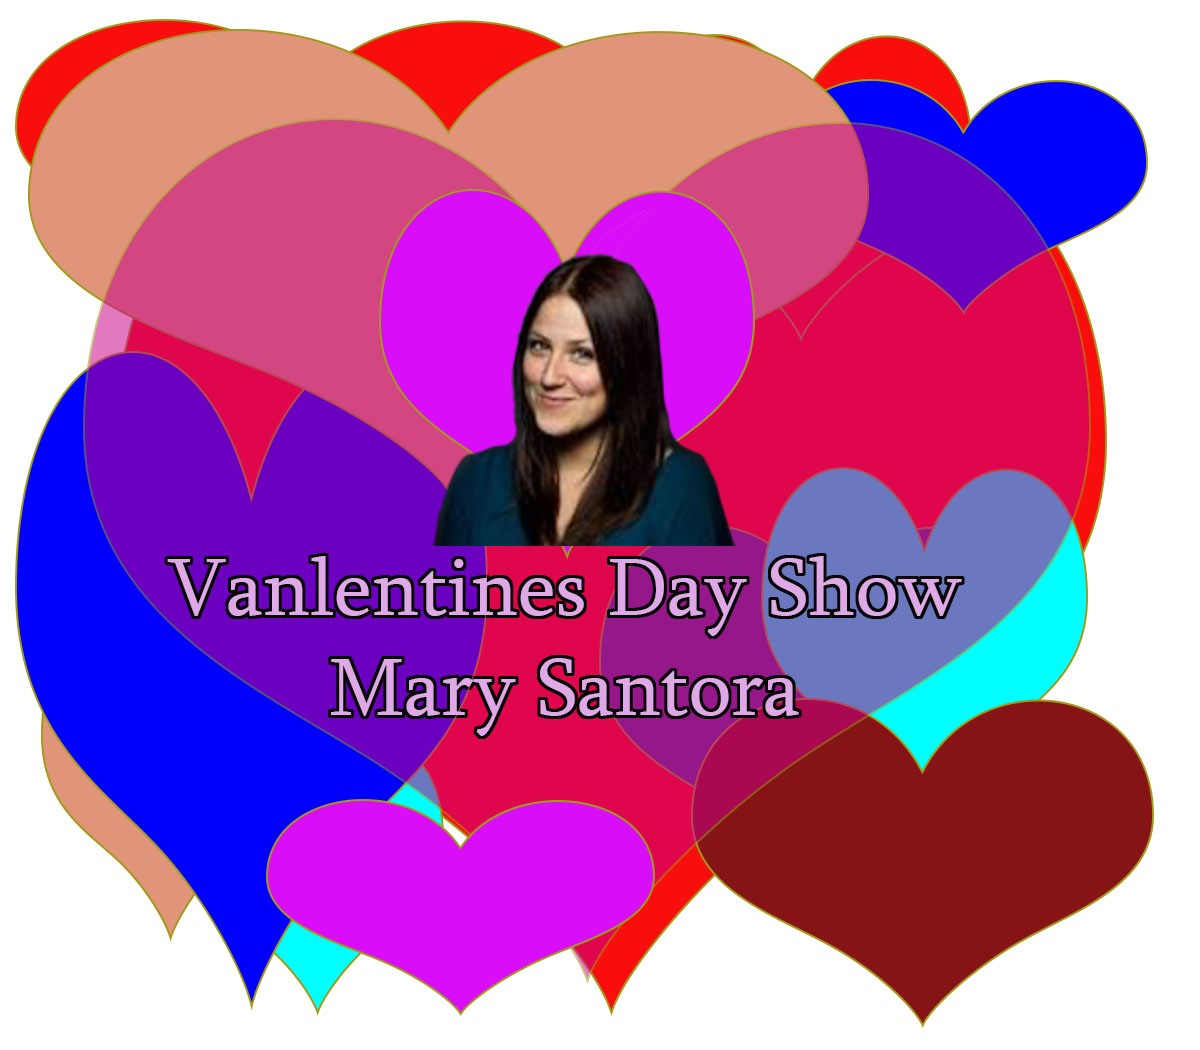 Valentines with Mary Santora 7:30 Show  on Feb 15, 19:30@Funny Stop Comedy Club - Buy tickets and Get information on Funny Stop funnystop.online